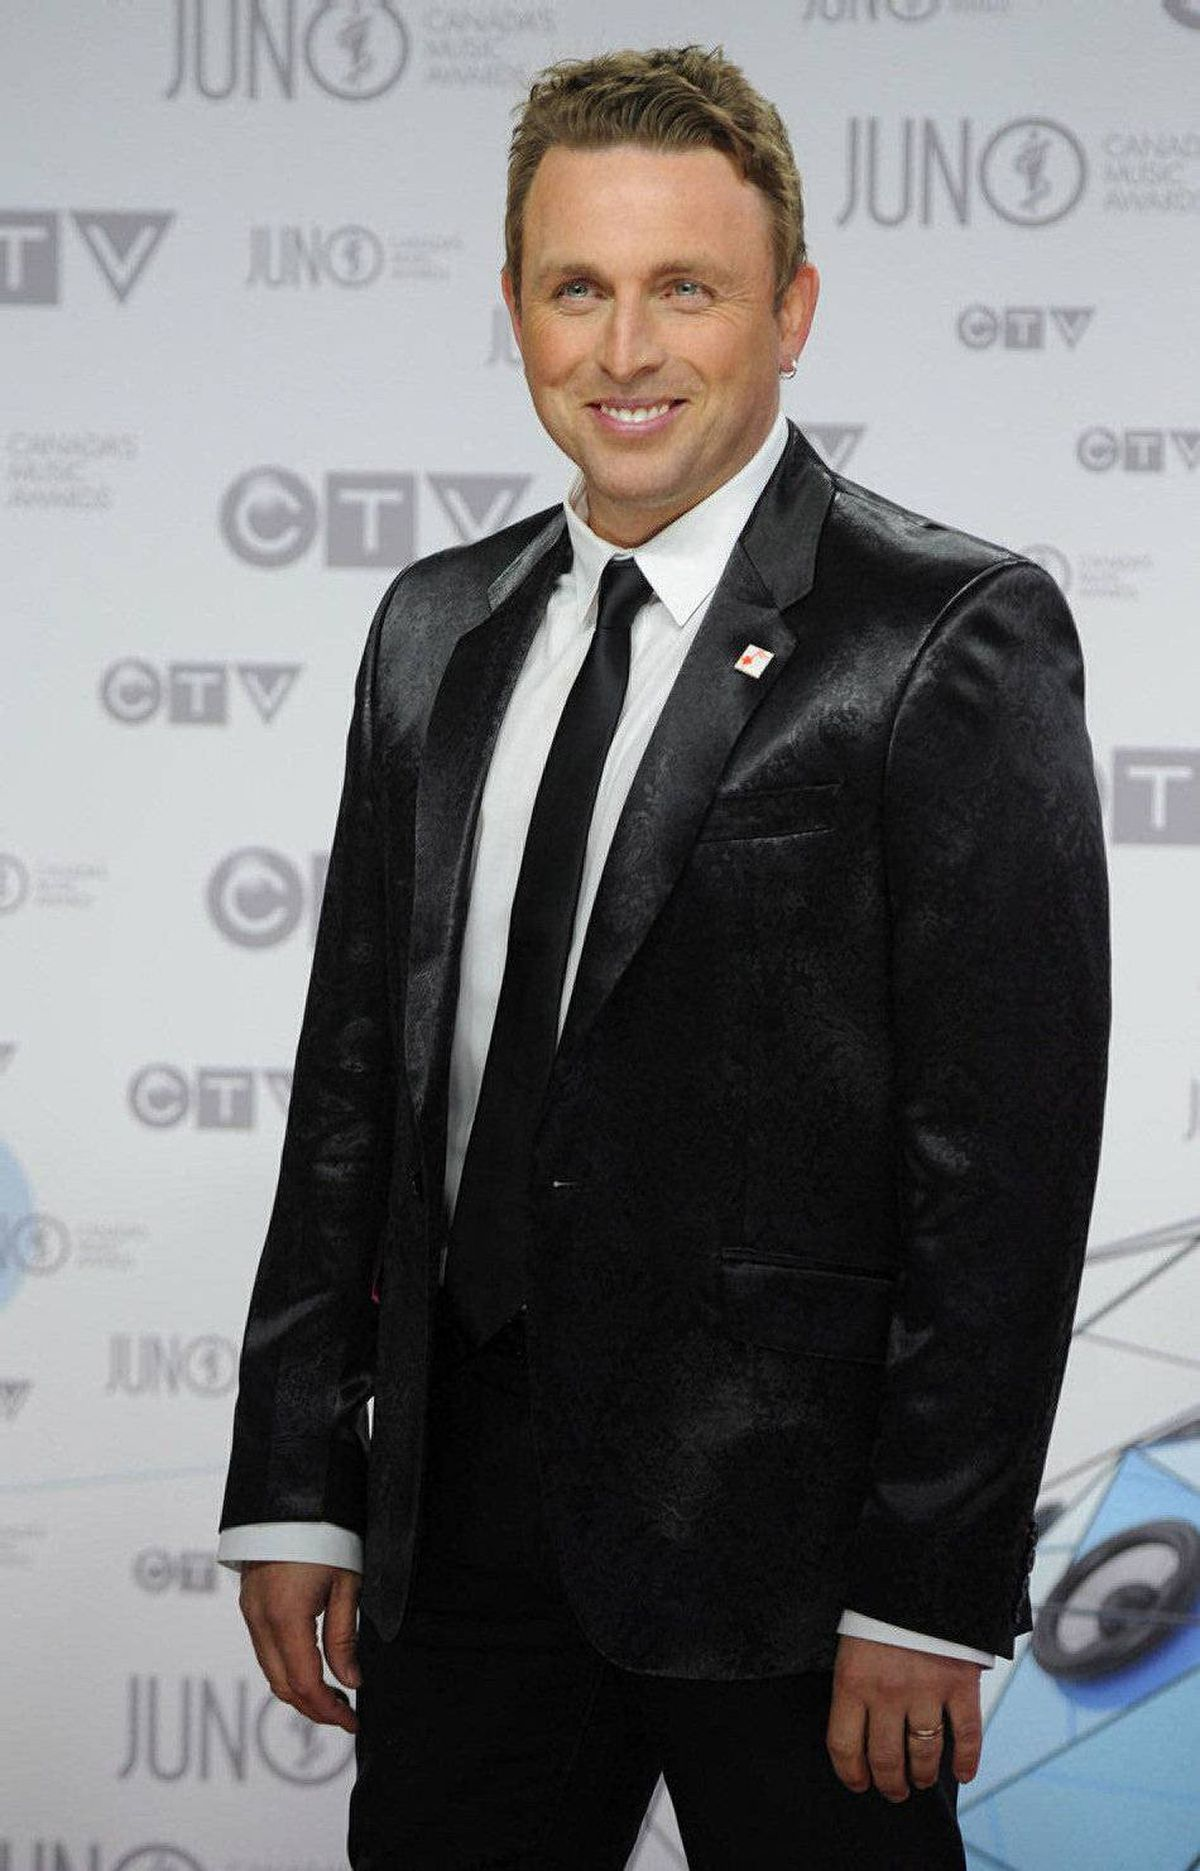 Johnny Reid poses on the red carpet as he arrives at the Juno Awards in Ottawa, Sunday April 1, 2012.